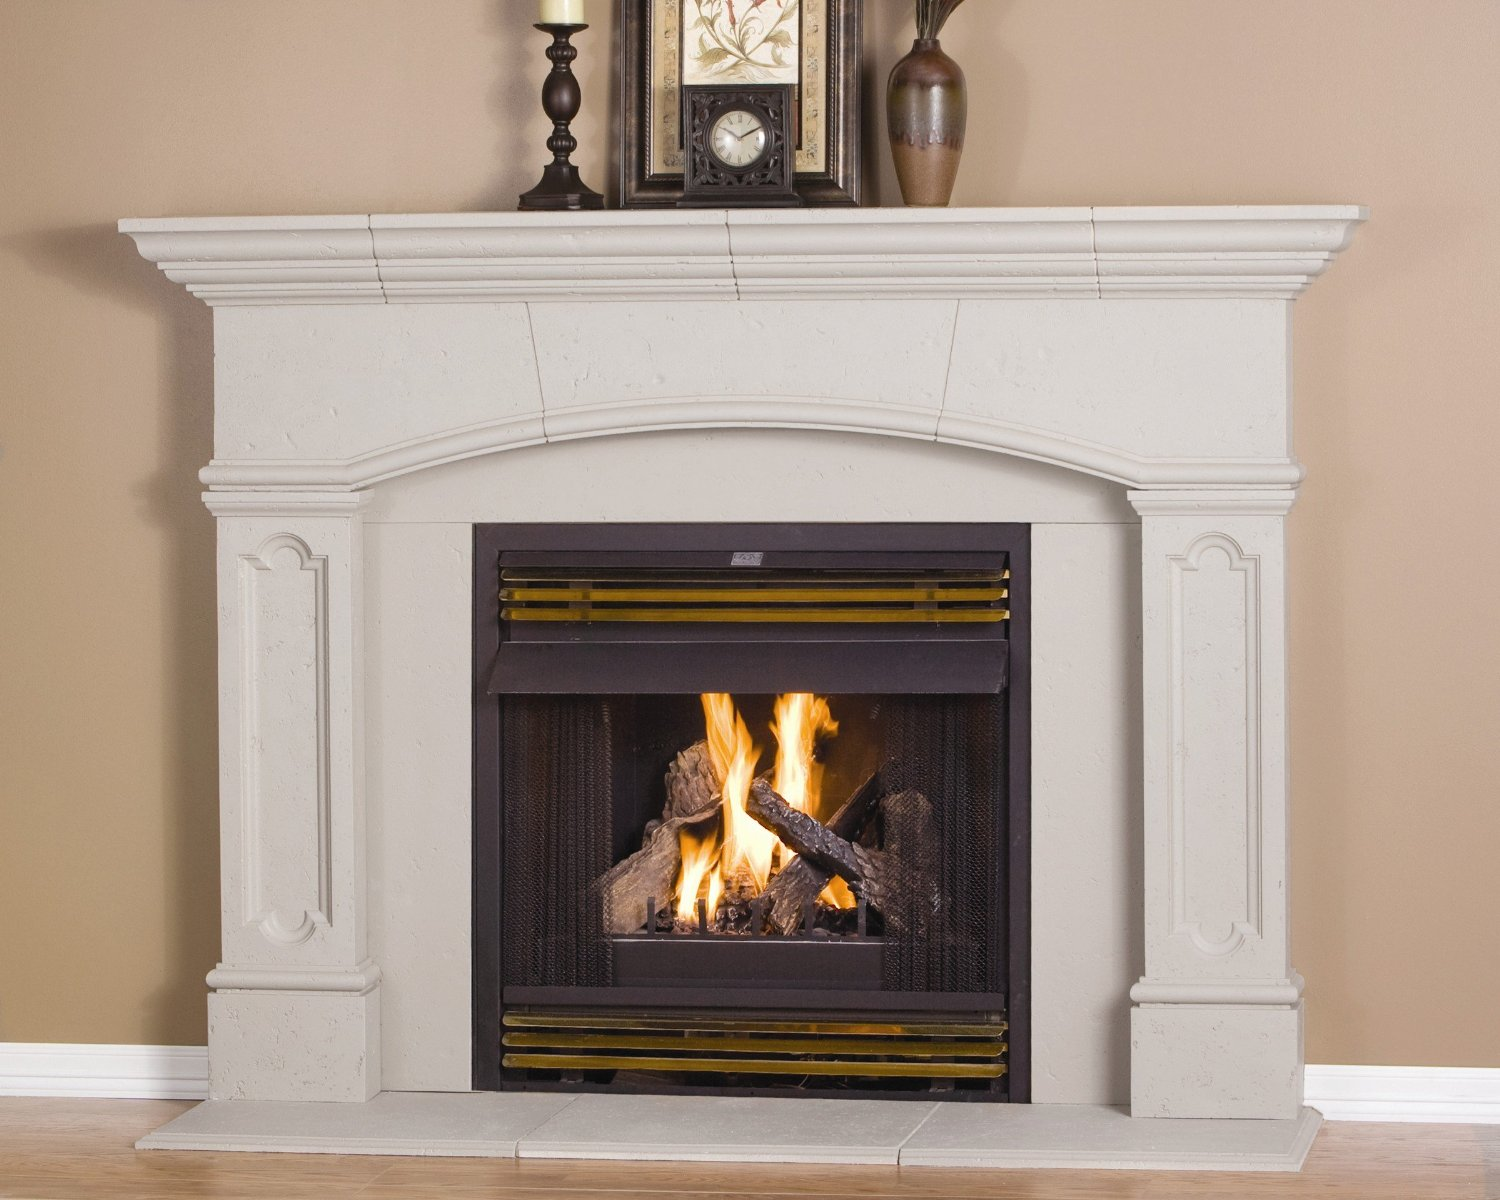 ideas u0026 tips amazing fireplace mantel kits for heatwarming home